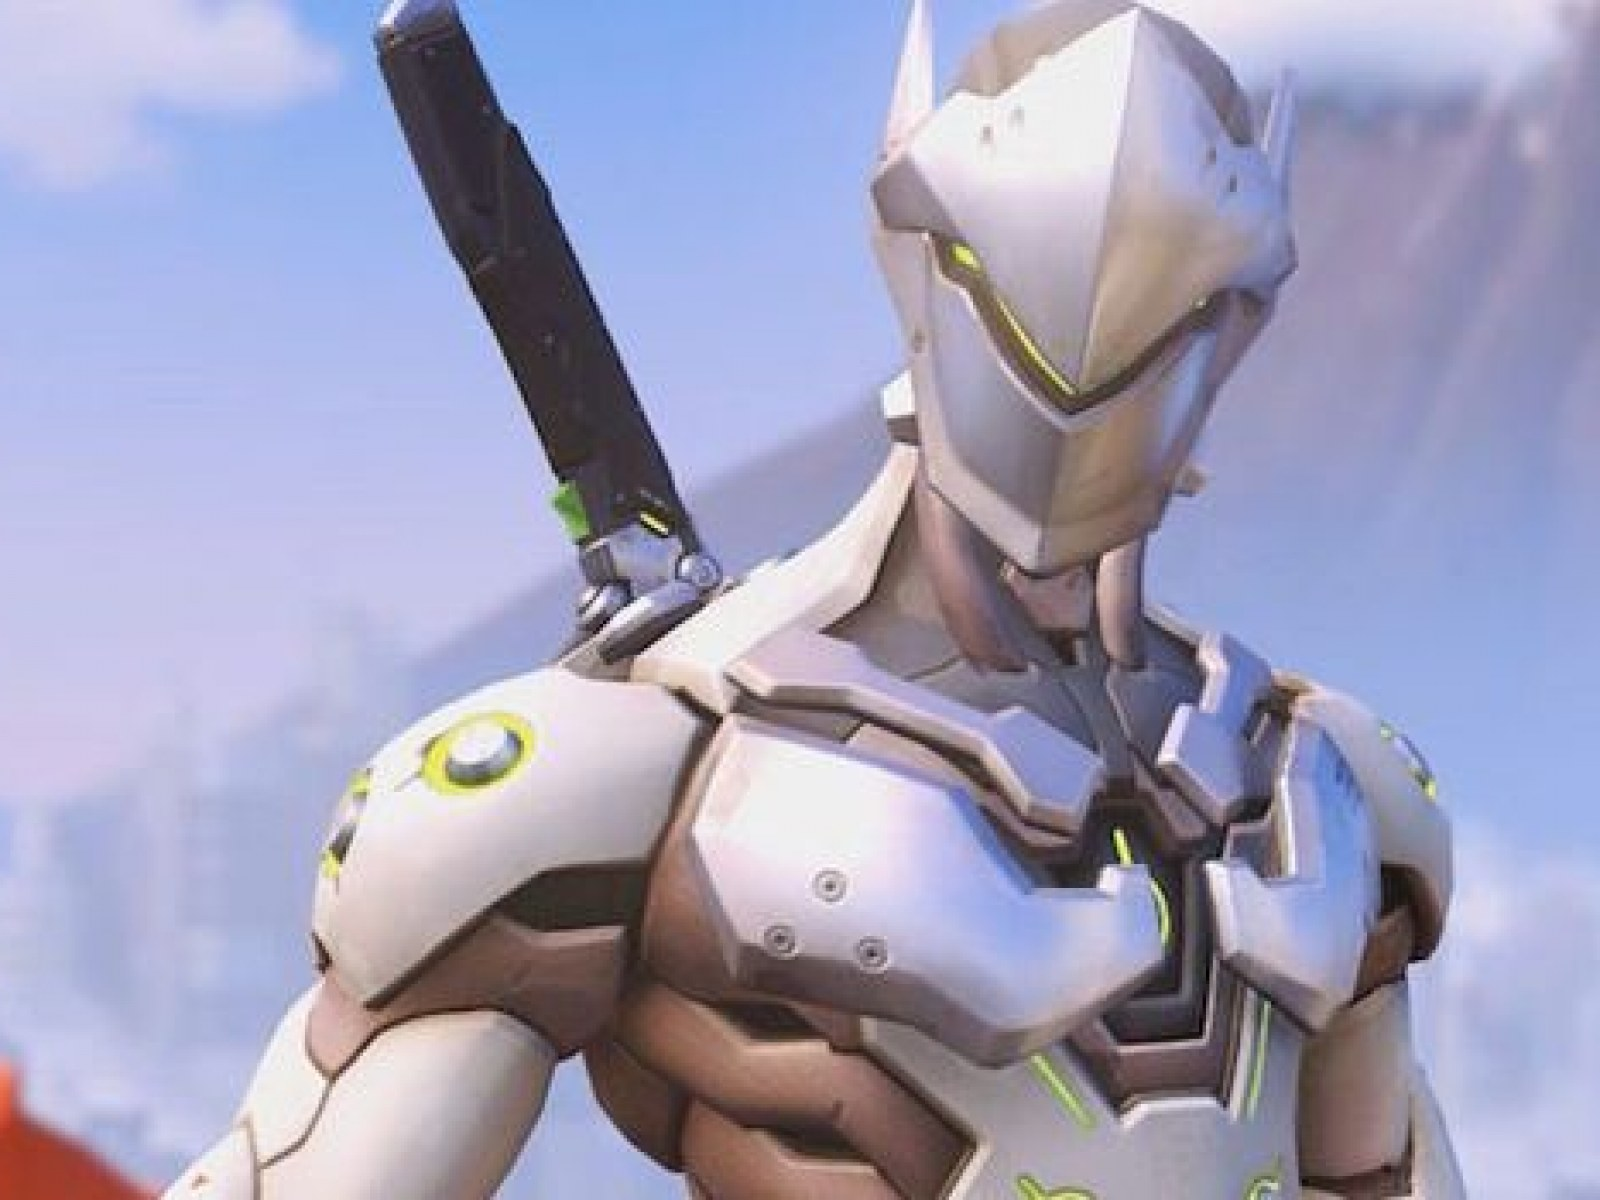 Overwatch' Necros Caught Cheating, But Did He?